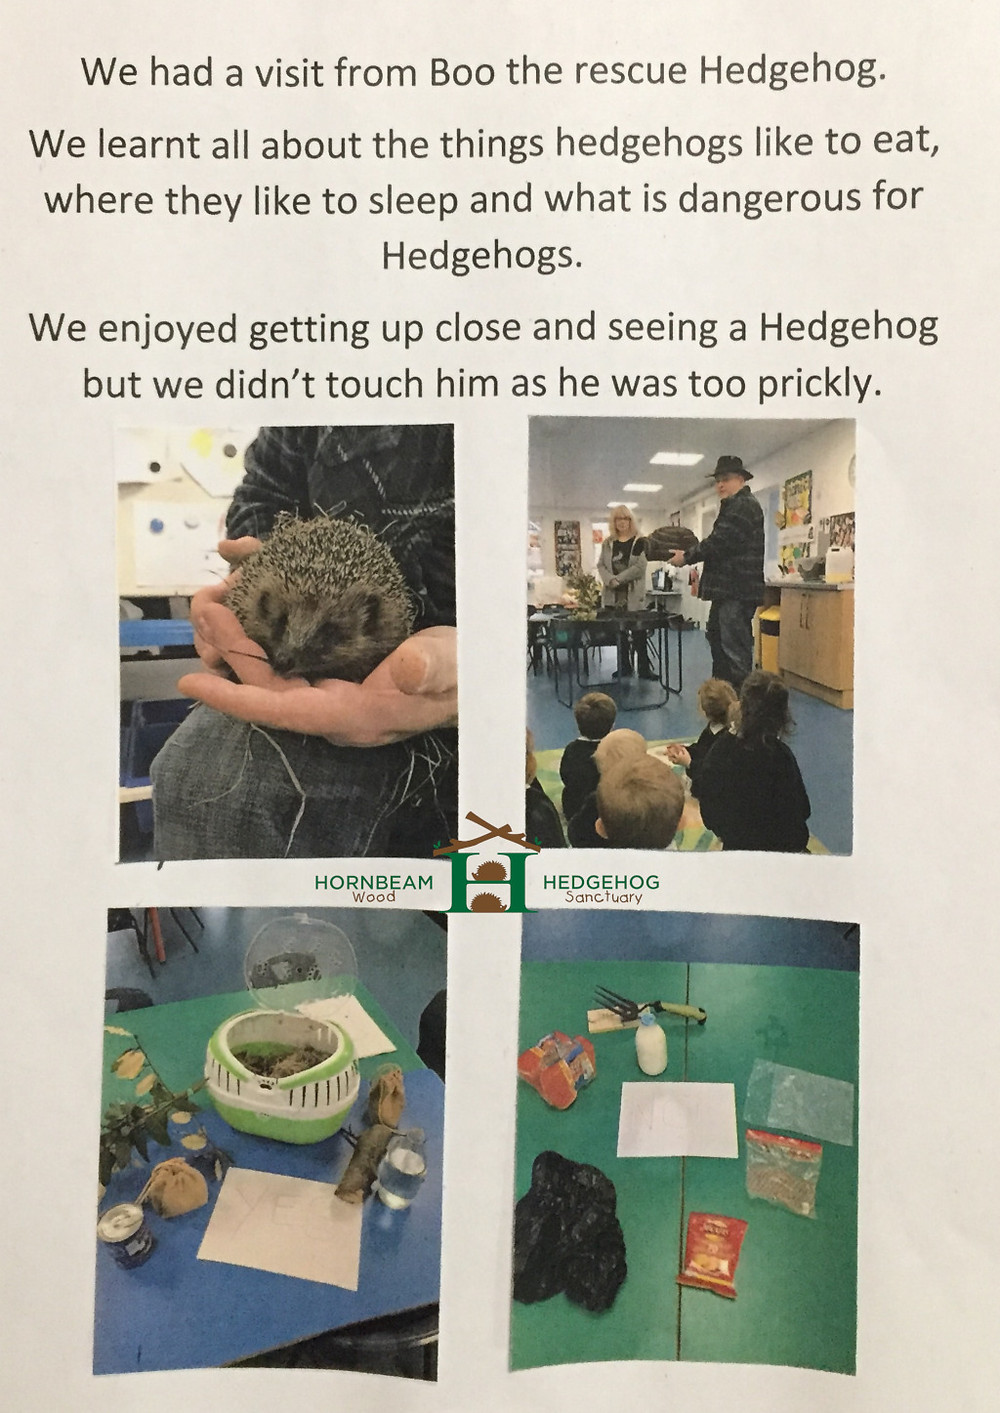 Childrens letter to Hornbeam Wood Hedgehog Sanctuary